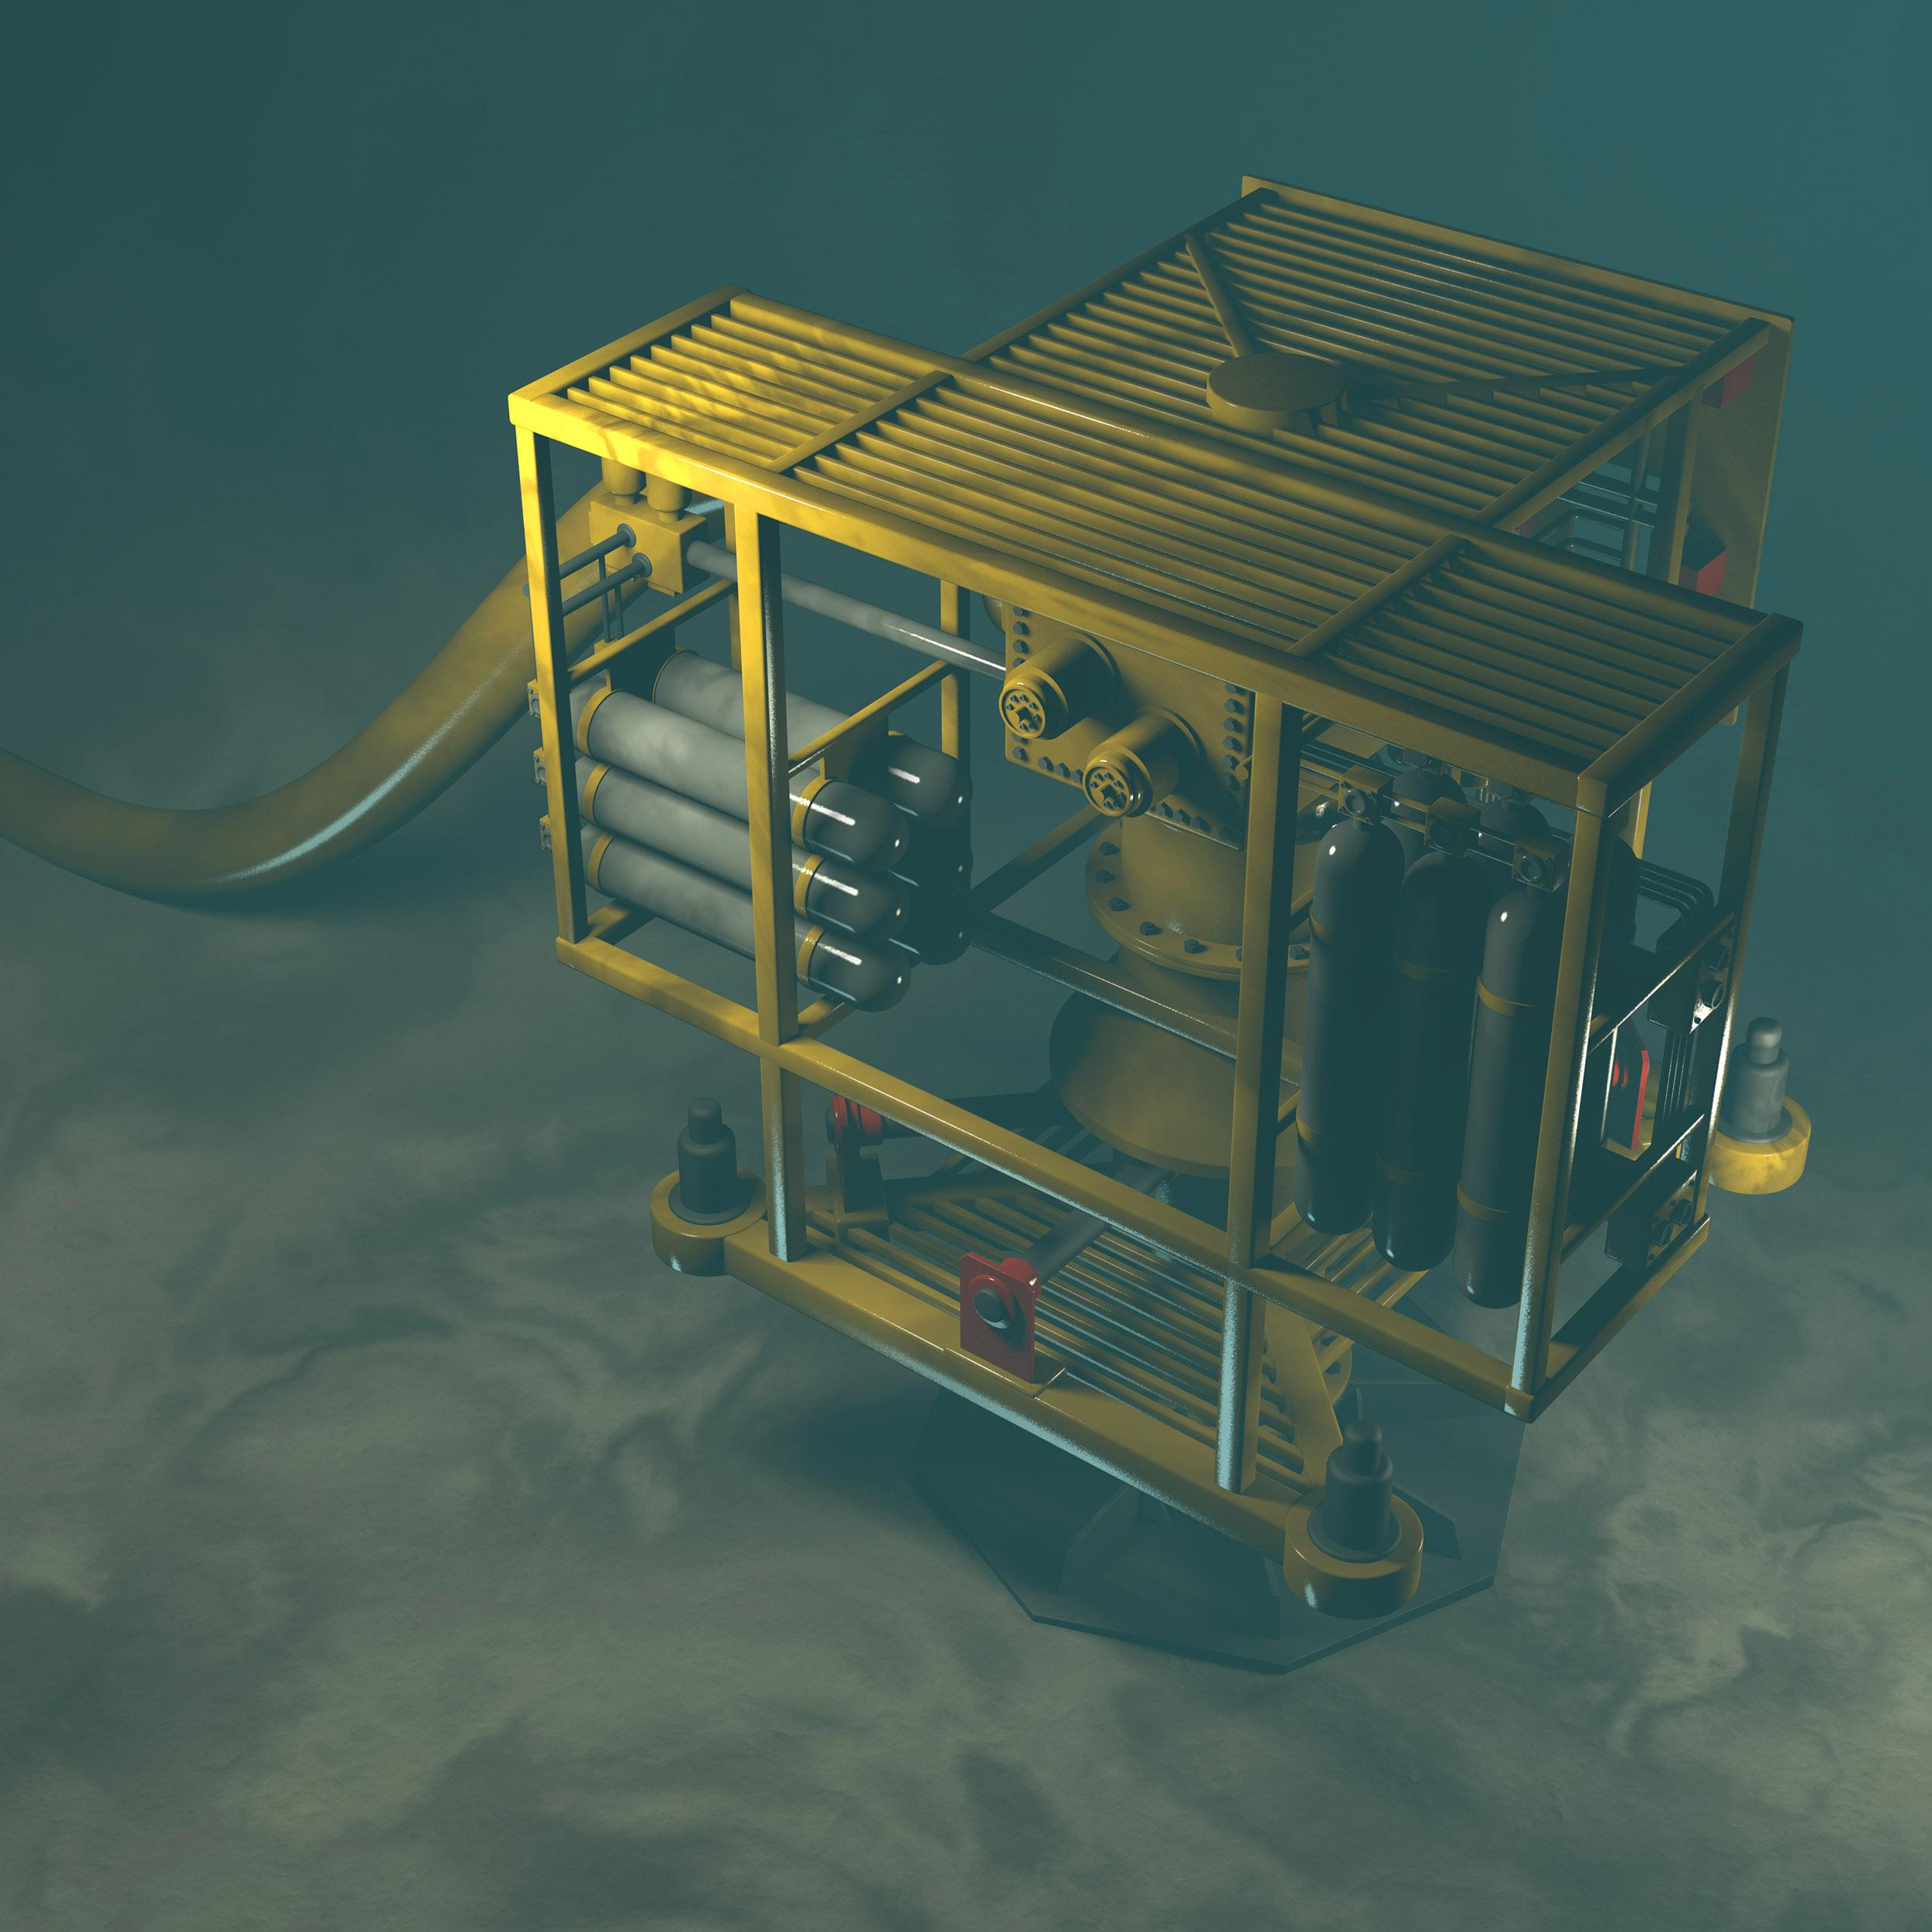 Energy sector technologies - Seabed factory Underwater oil and gas wellhead equipment - BlueThink Technology, Engineering, Industrial, Product, Design and Mechanical Consultants and assisting with Oil energy technology transfer